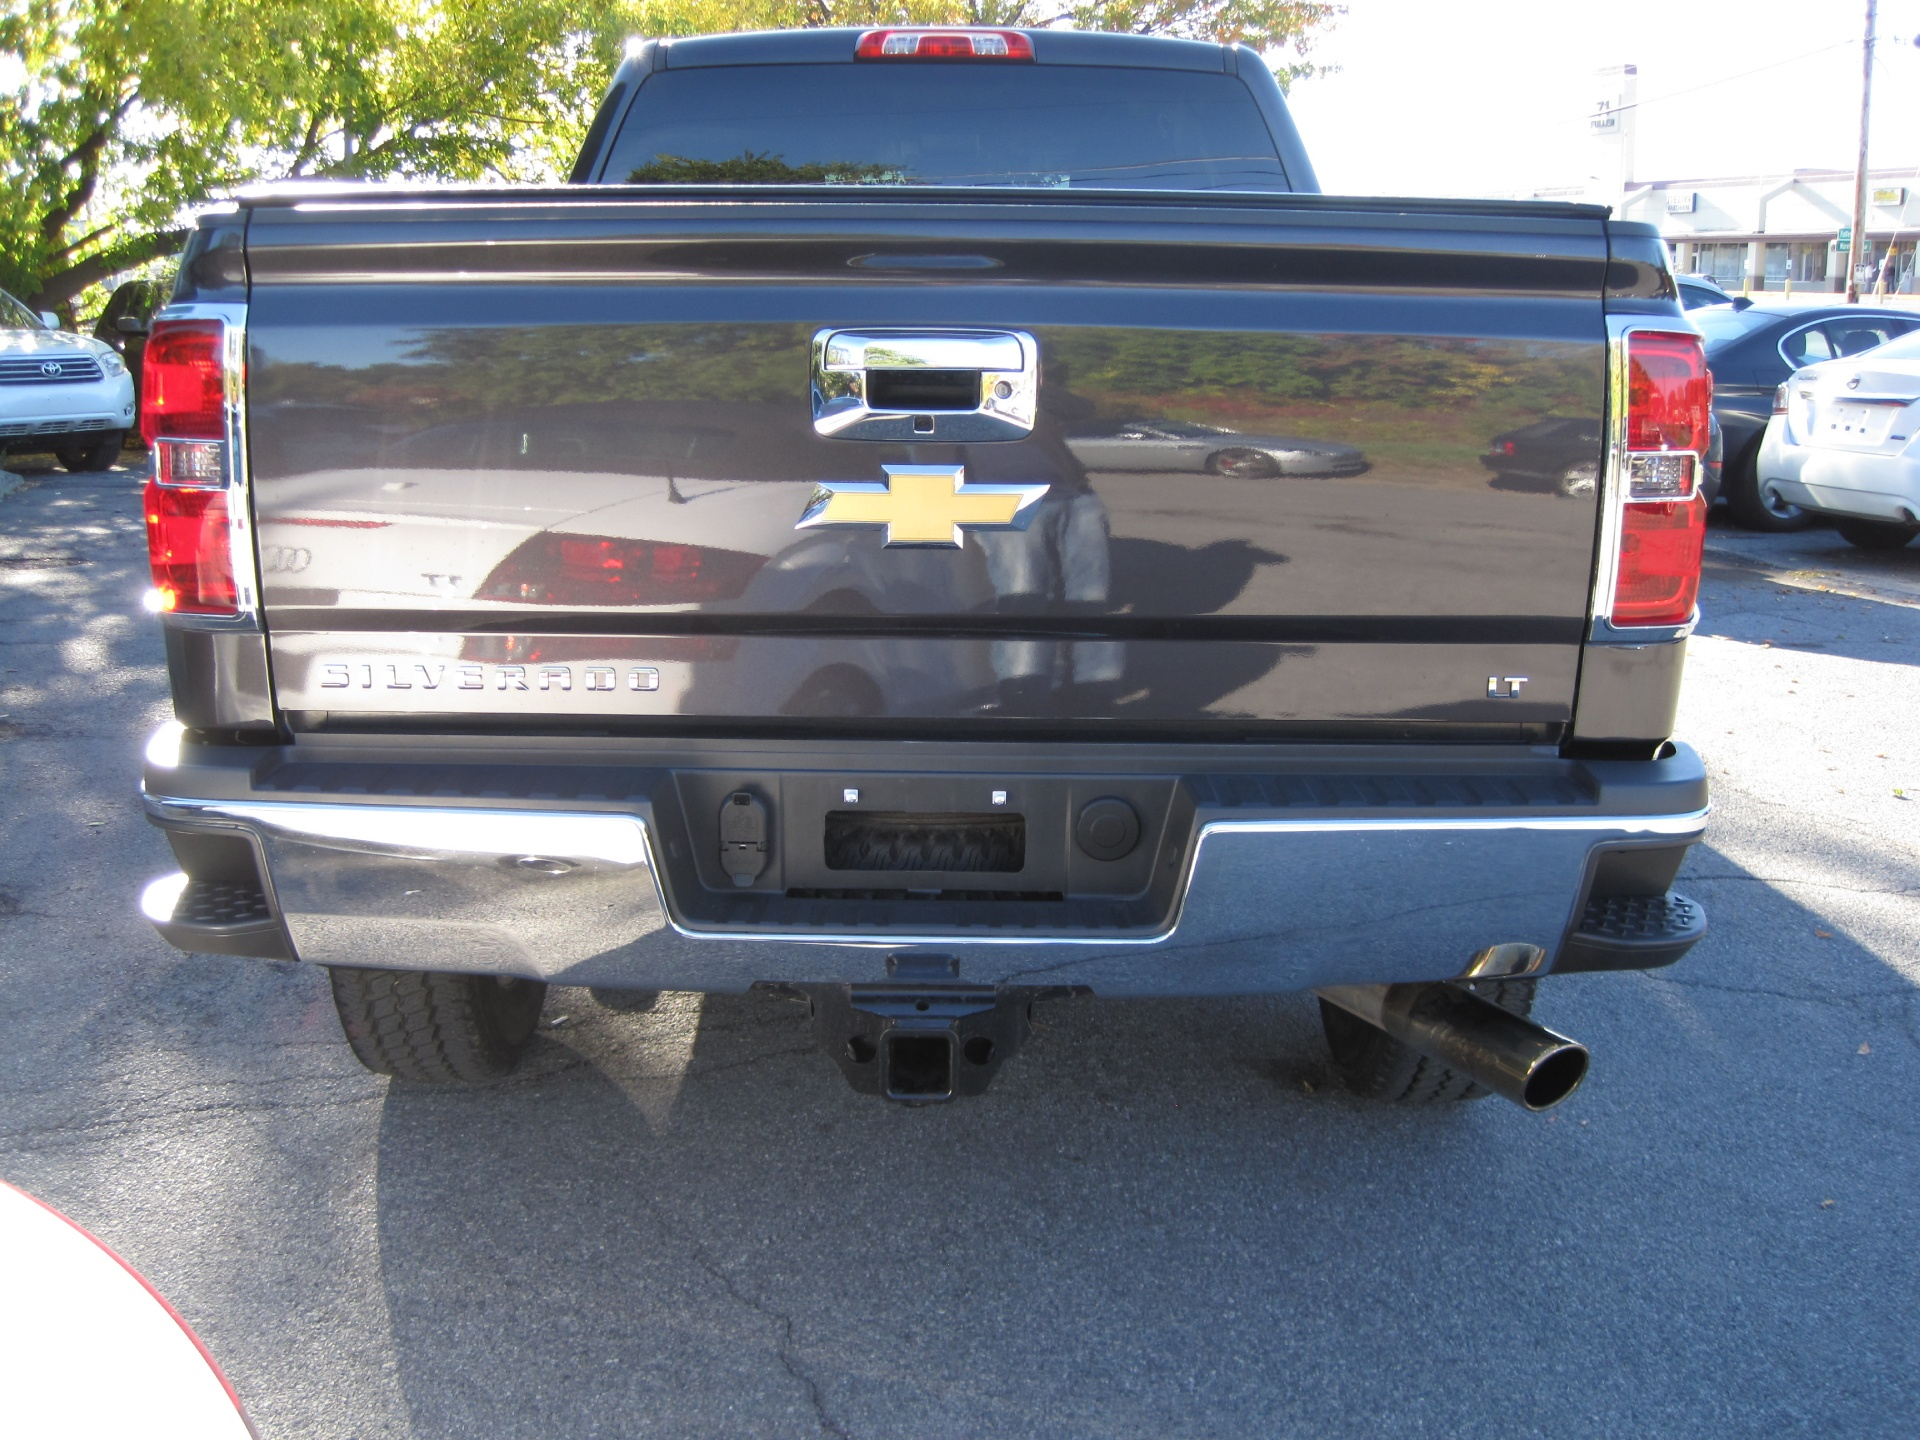 840_p13_l 2015 chevrolet silverado 2500hd lt 2500hd 4x4 extended cab,like  at readyjetset.co